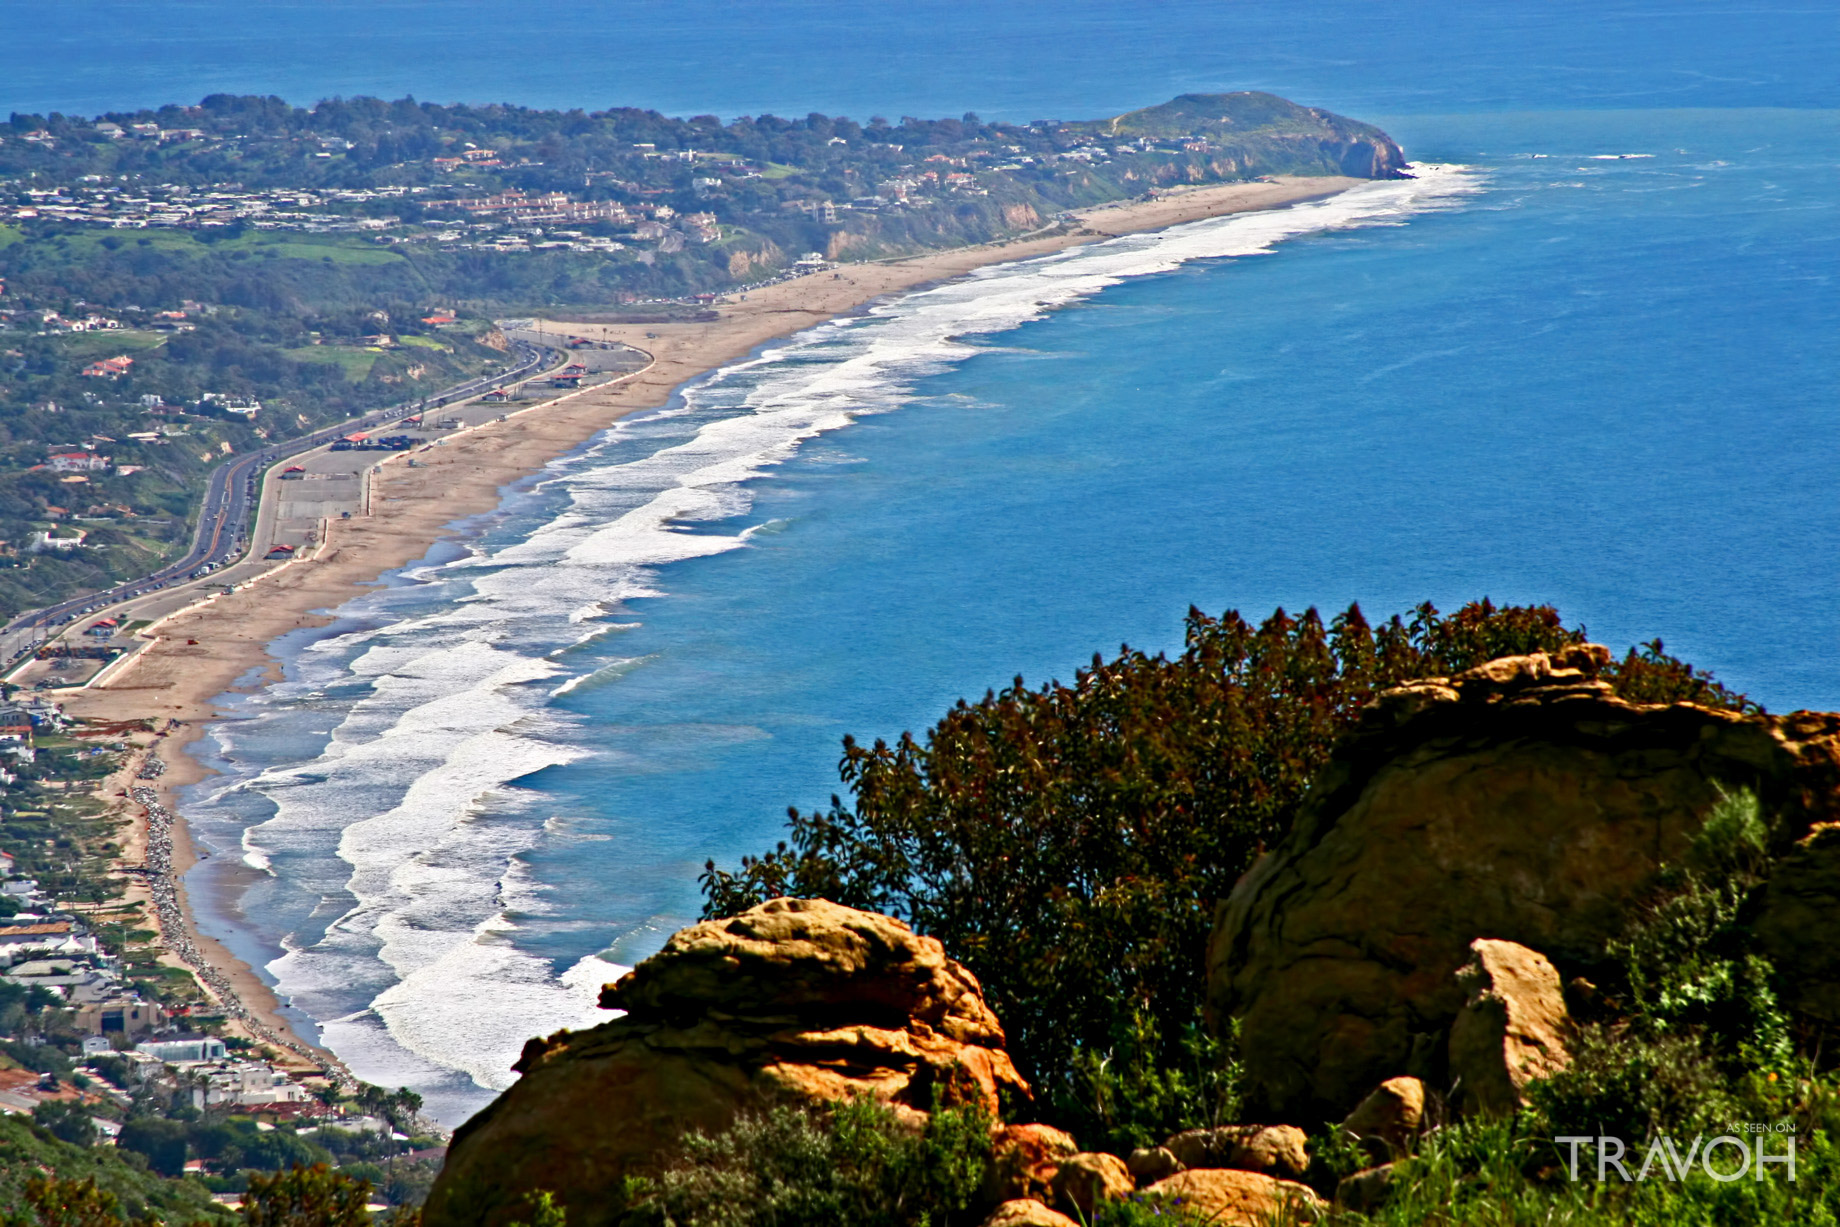 Zuma Beach - Exploring 10 of the Top Beaches in Los Angeles, California